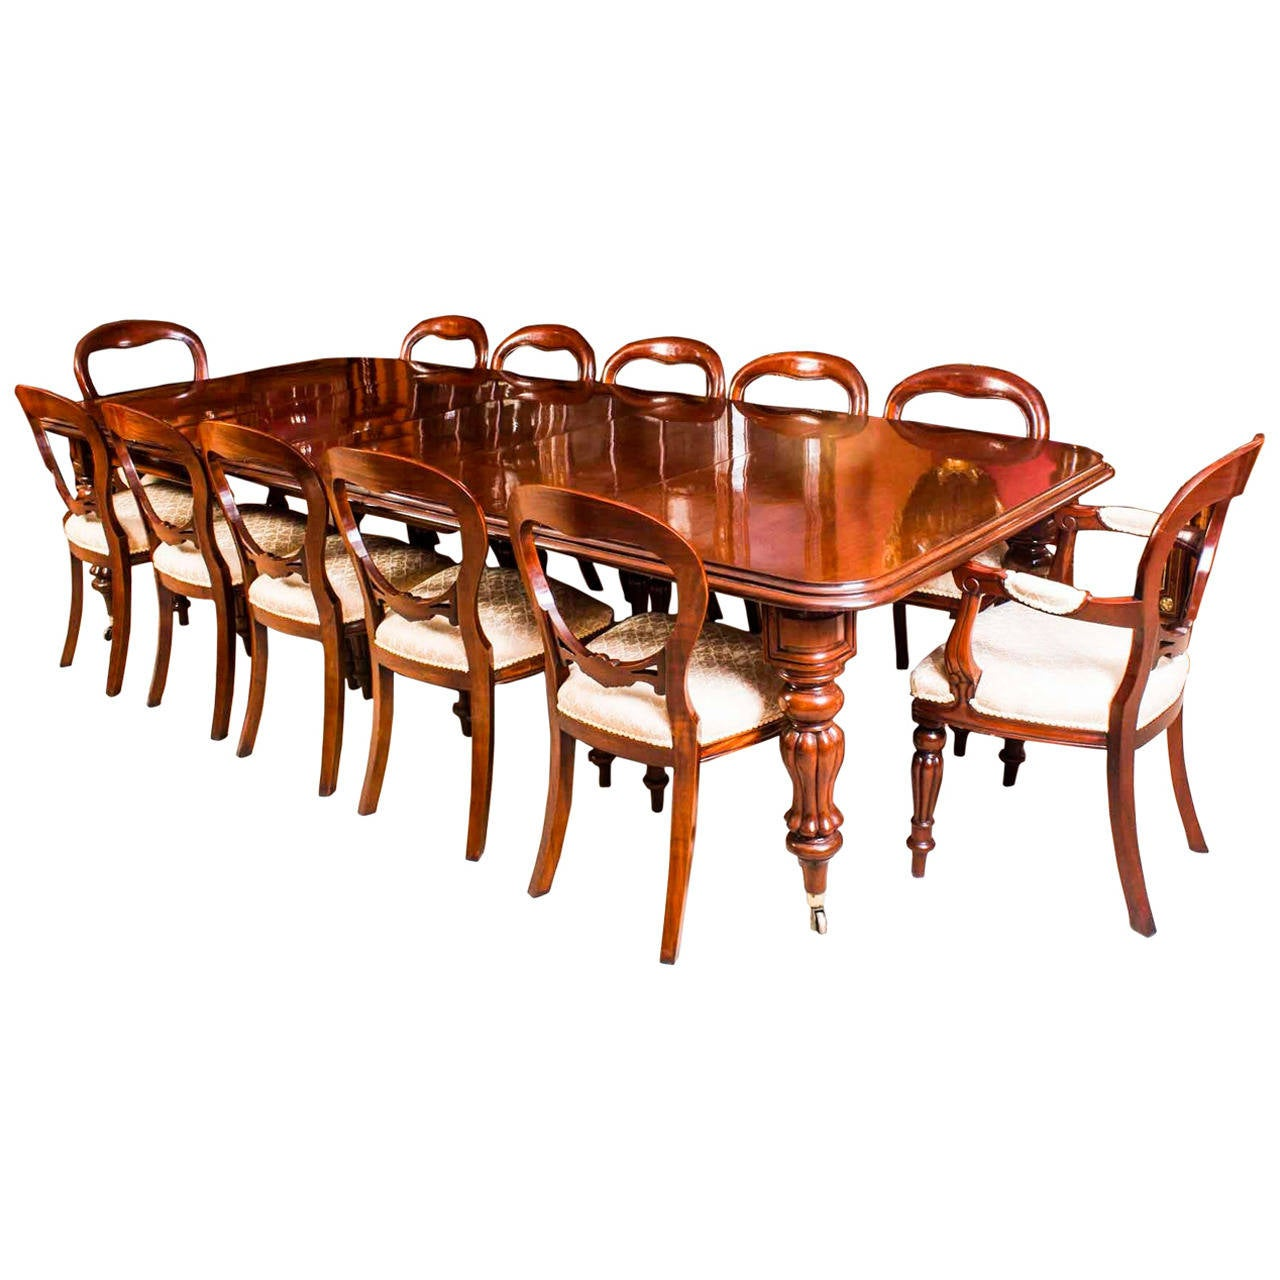 Antique victorian dining chairs - Antique Victorian Dining Table With Twelve Chairs Circa 1850 1